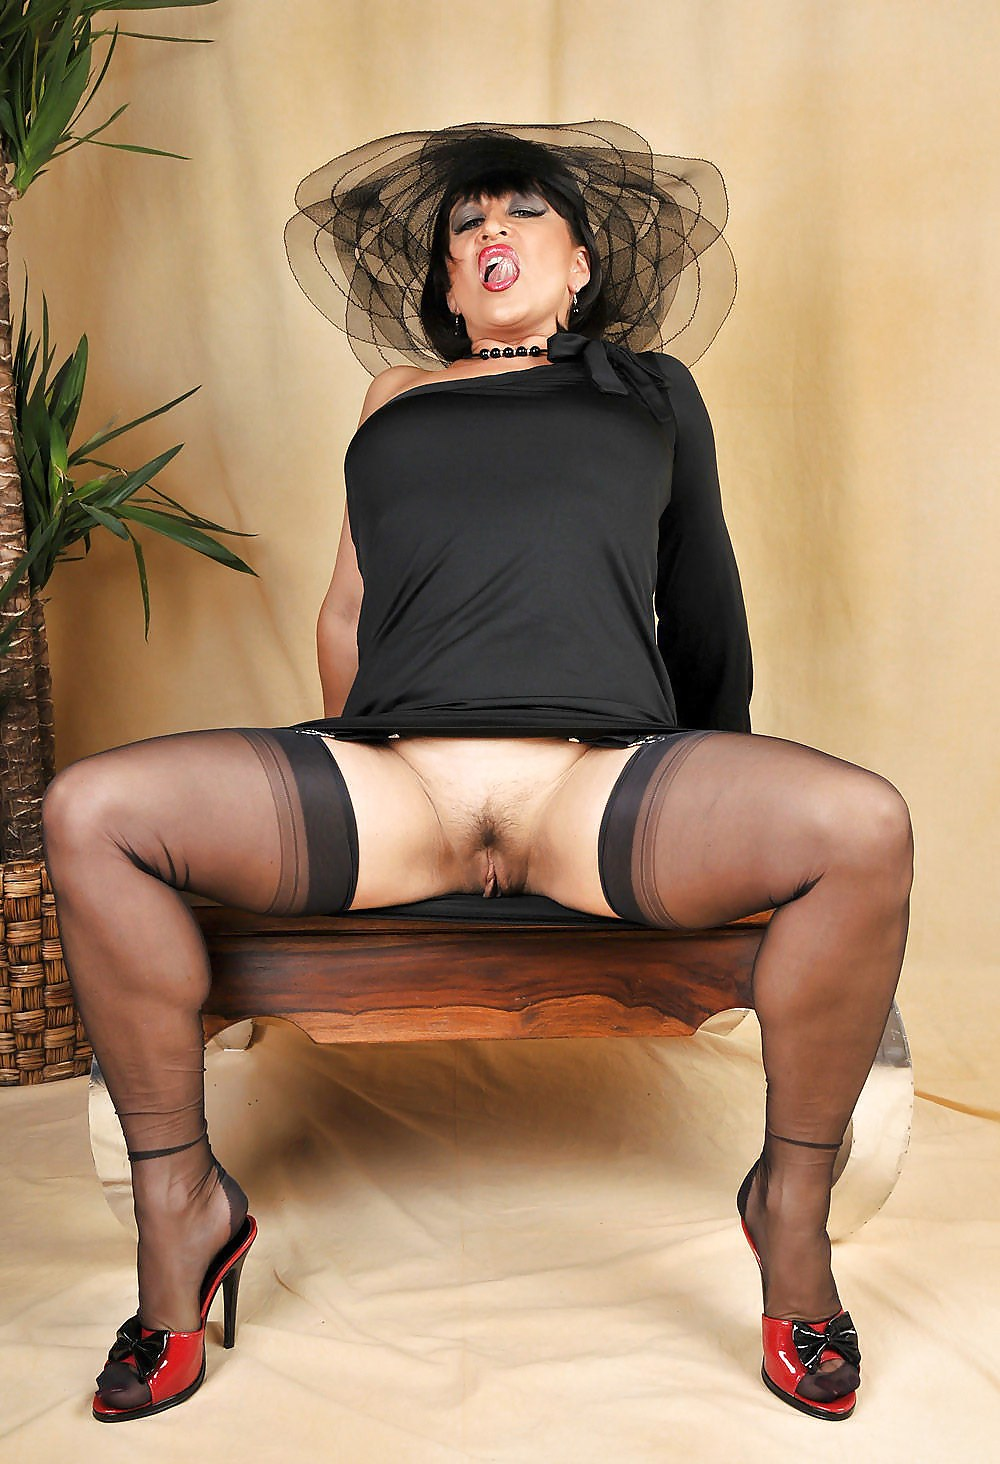 mature-stockings-galleries-free-pictures-naked-large-women